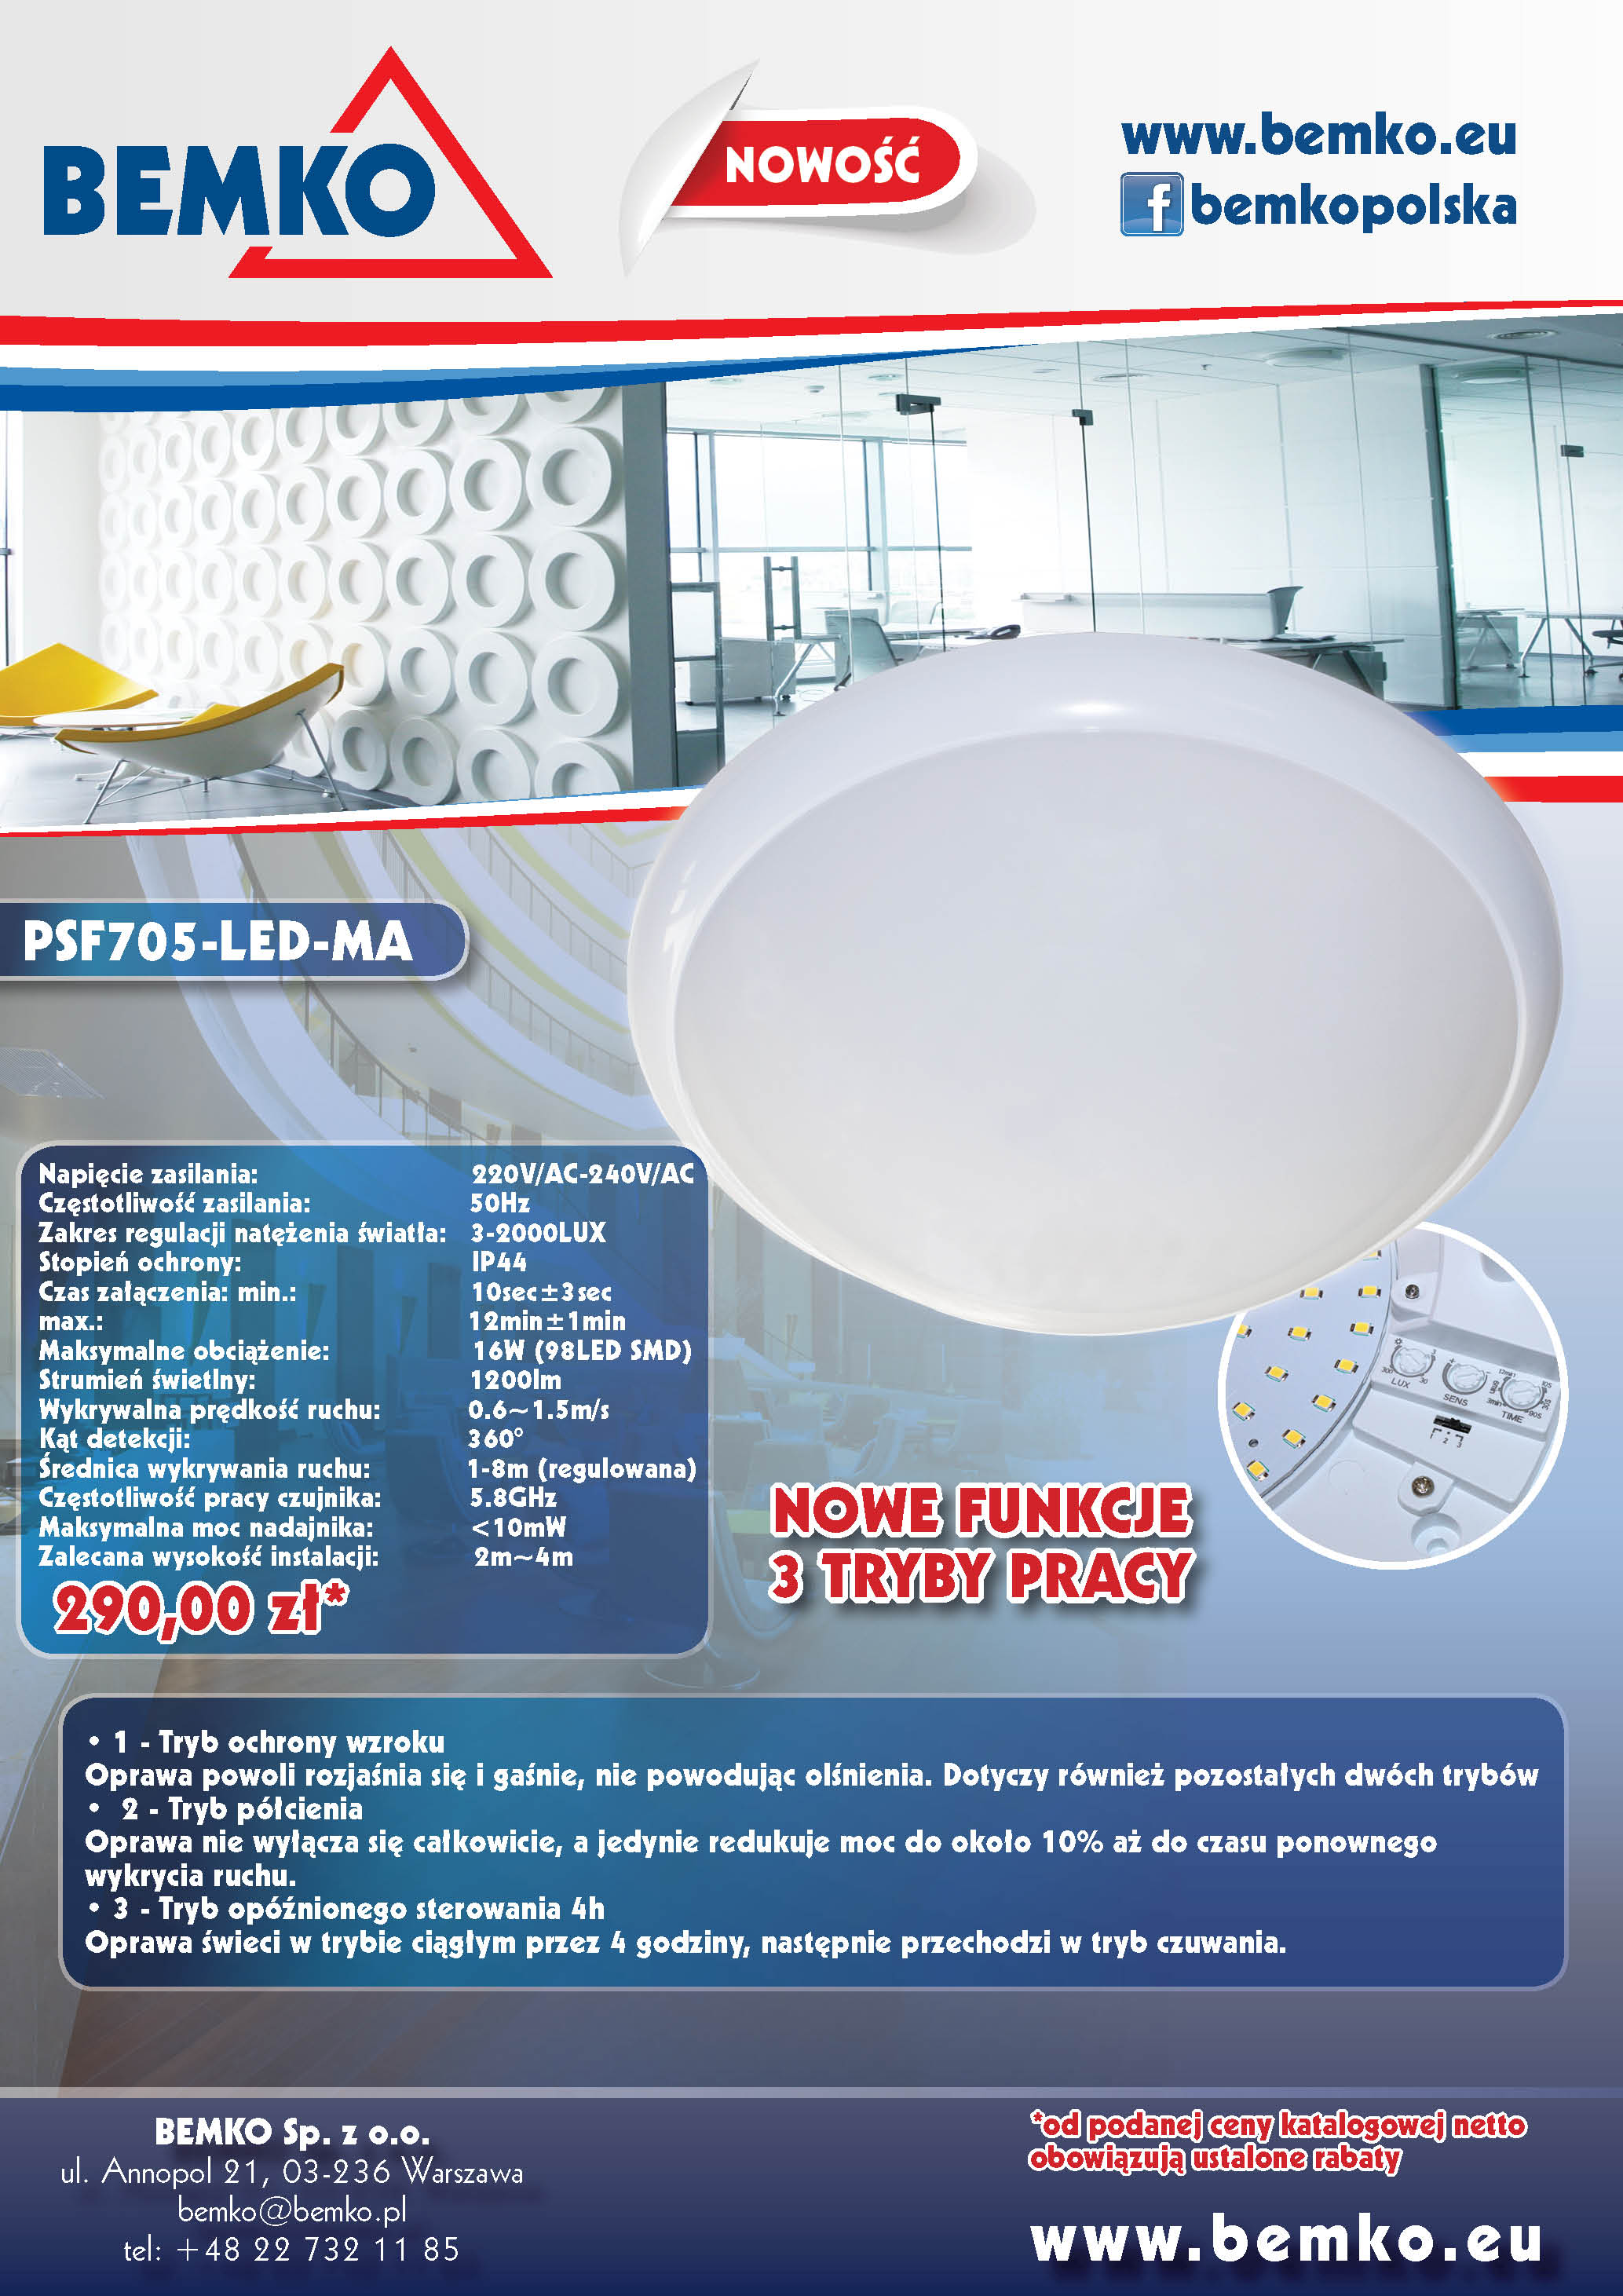 NEW - PSF705-LED-MA - 3 OPERATION MODES